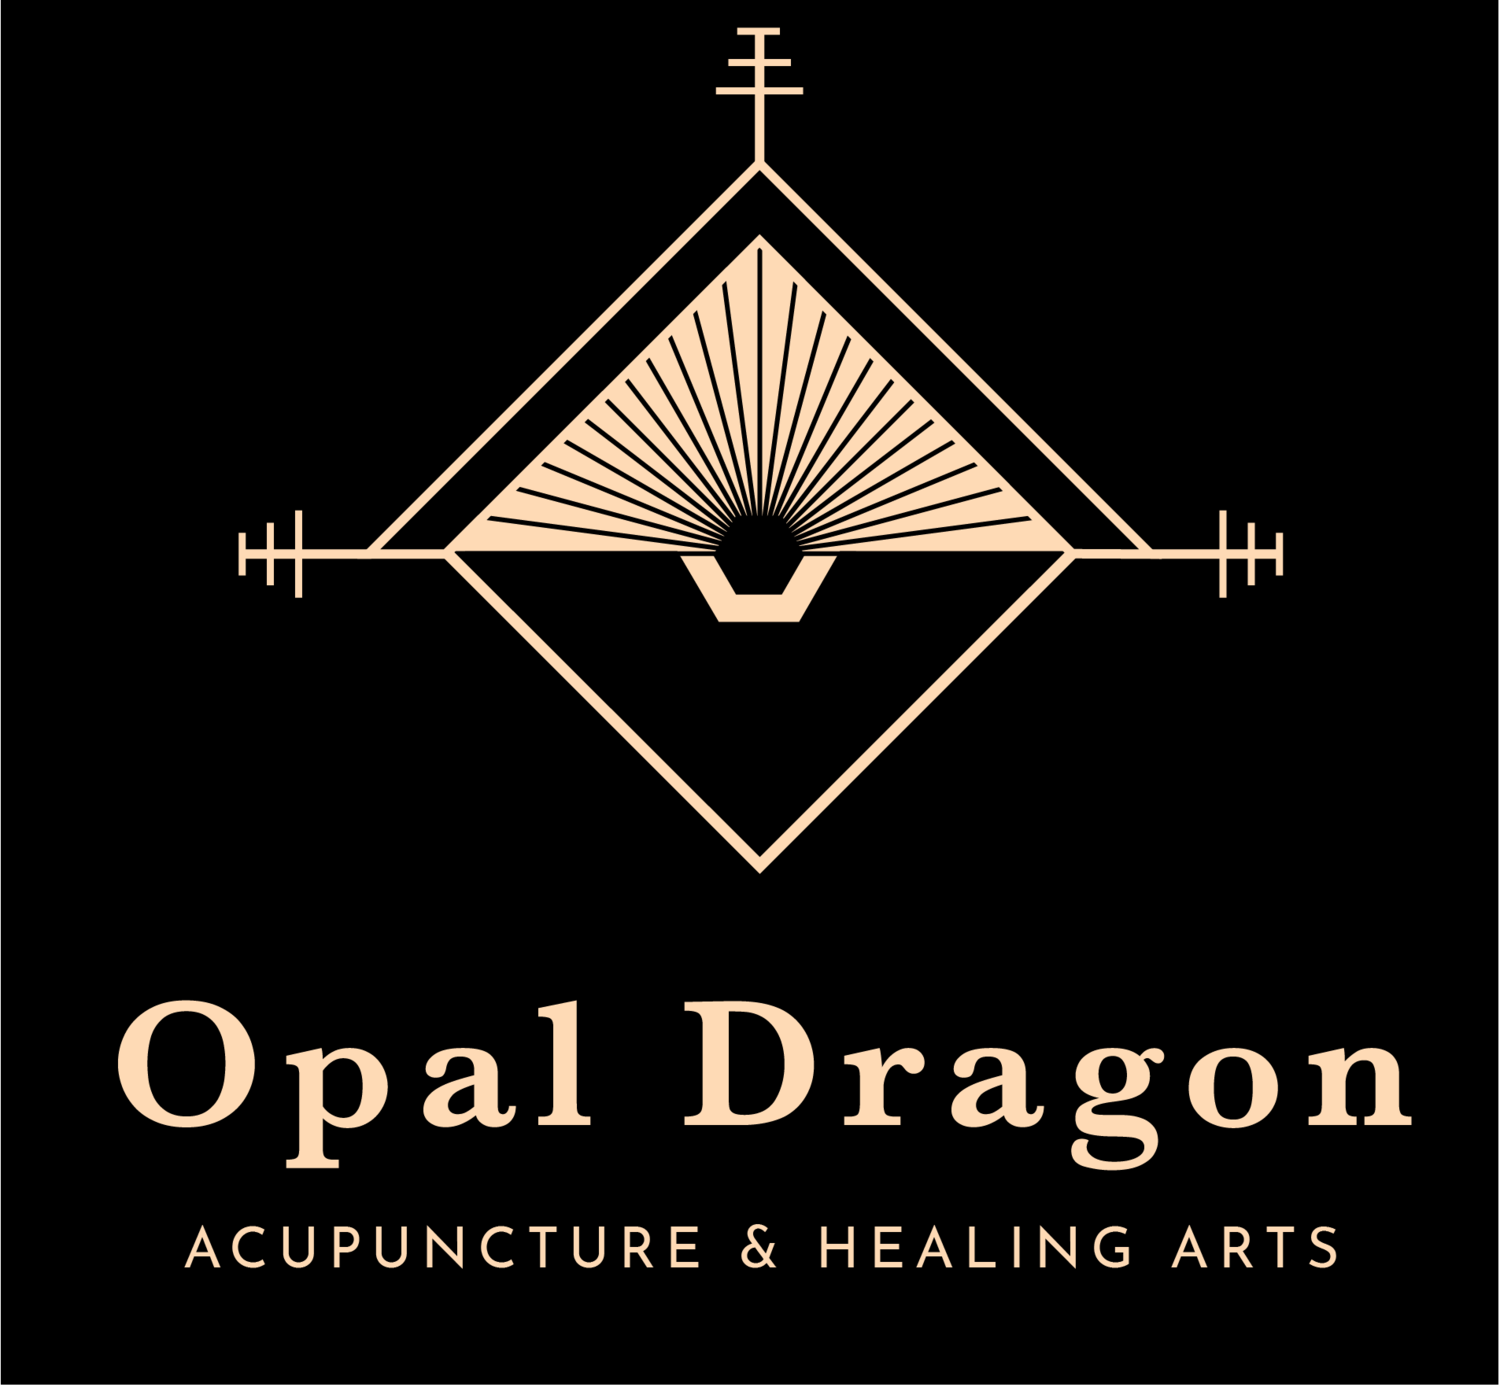 Opal Dragon acupuncture and healing arts